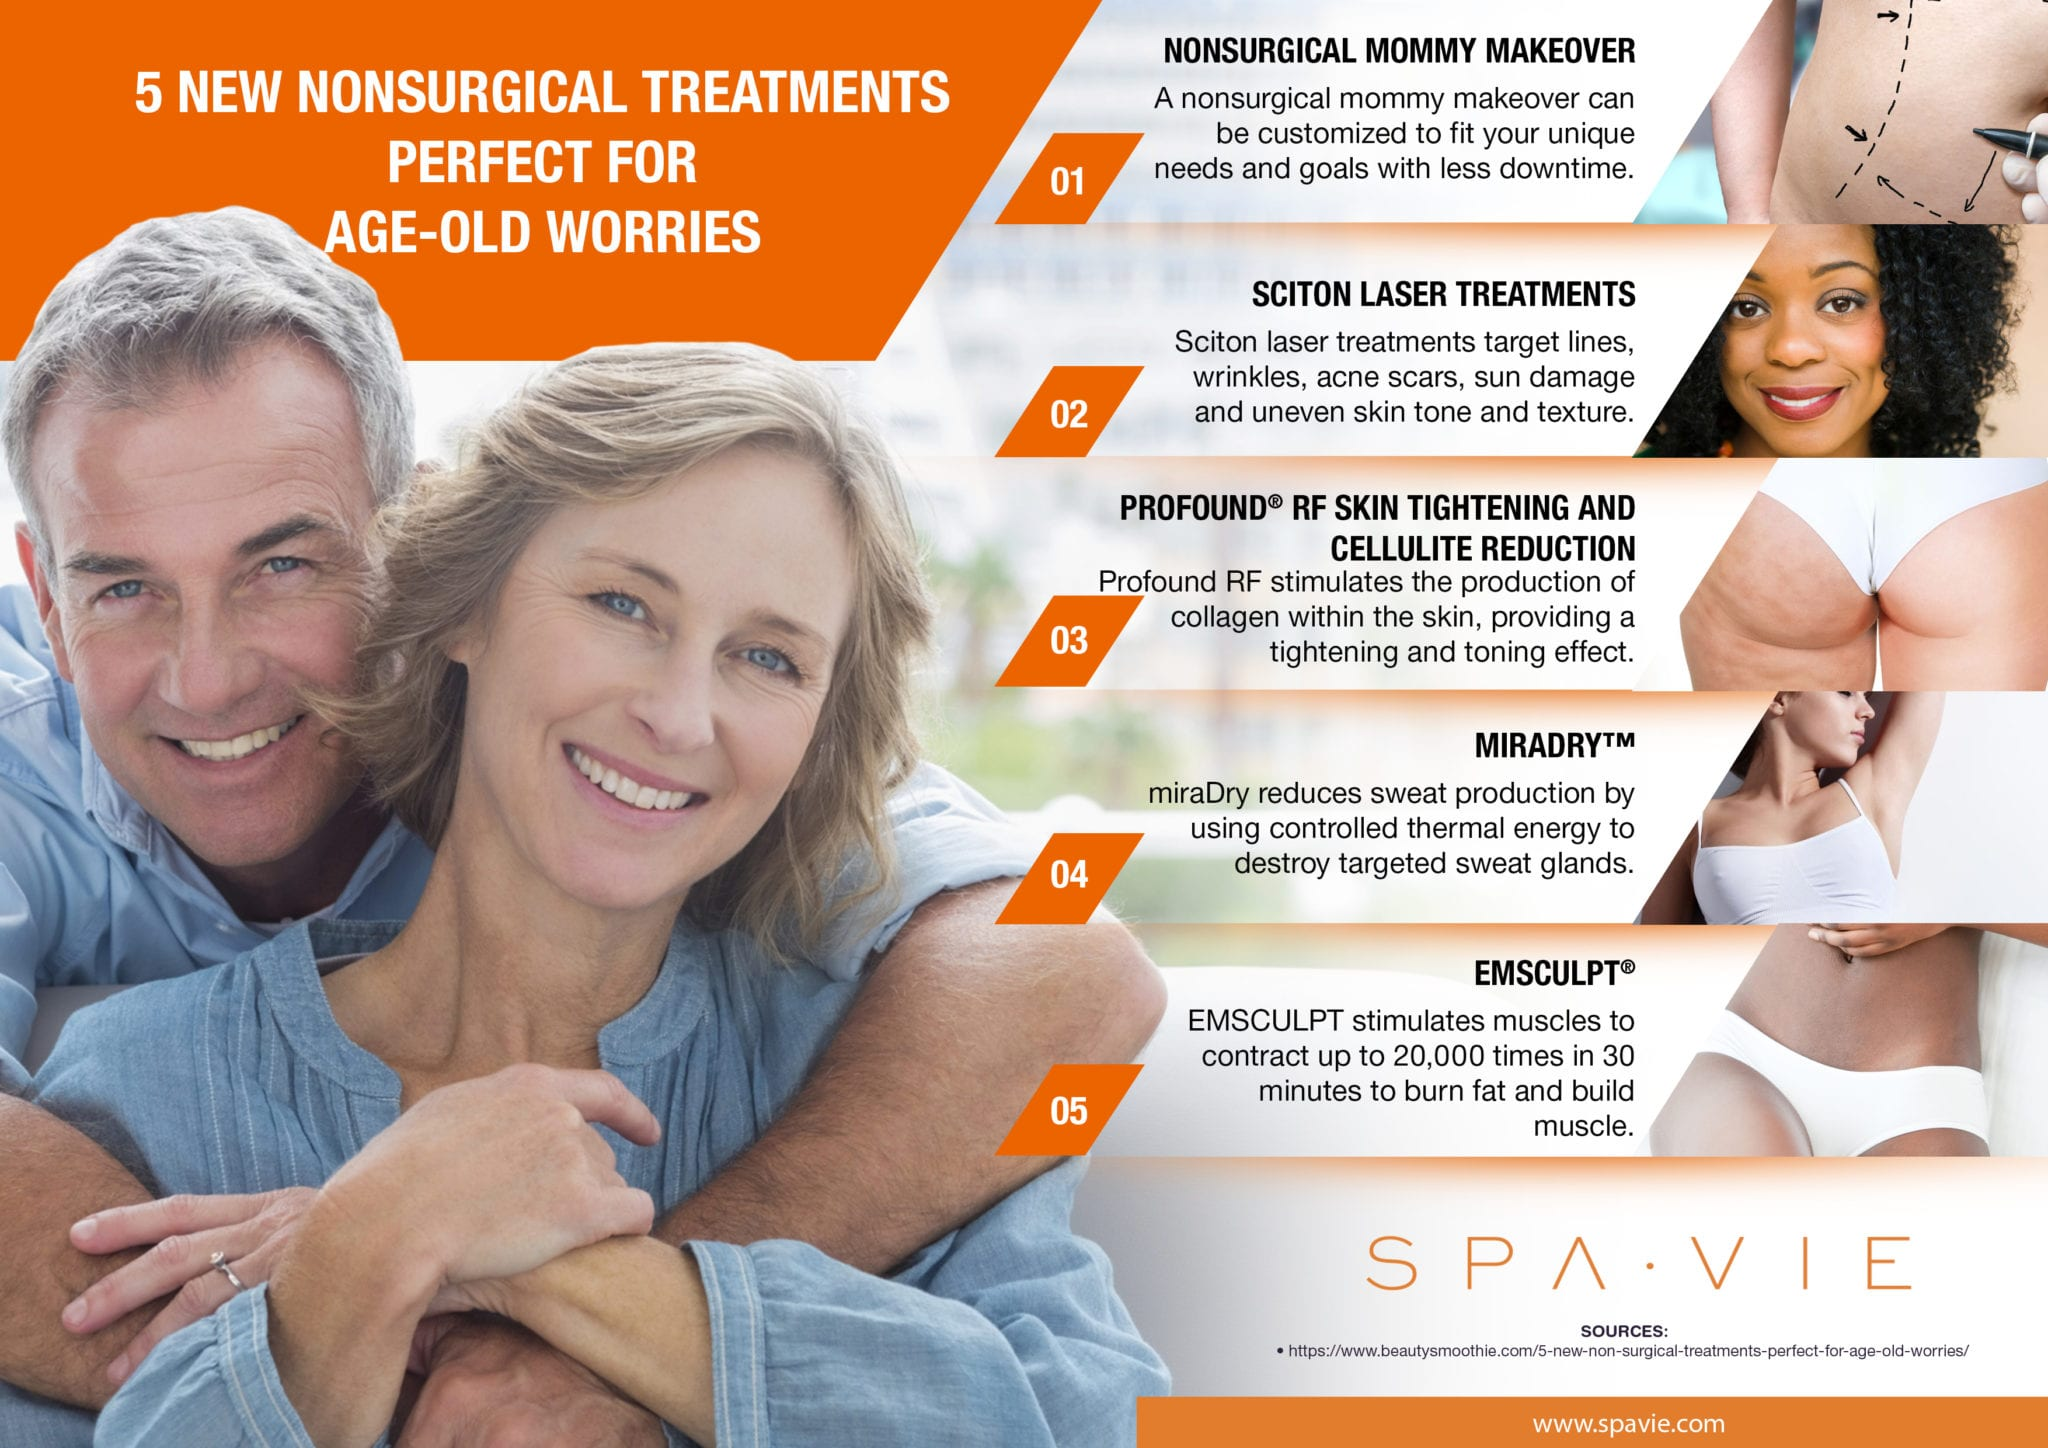 5 New Nonsurgical Treatments Perfect for Age-Old Worries [Infographic]